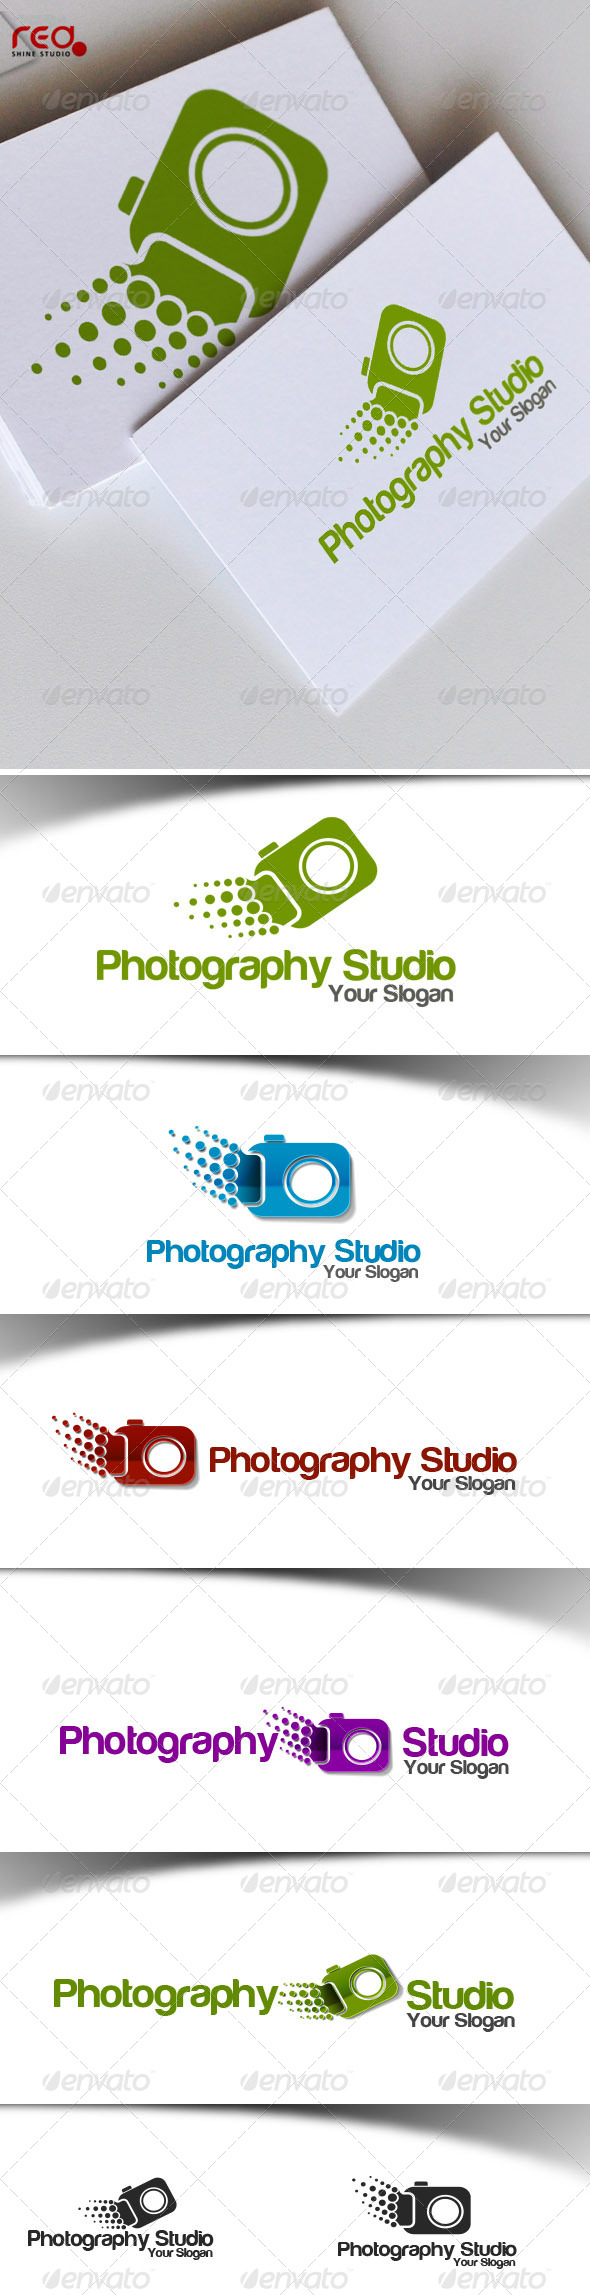 GraphicRiver Photography Studio Logo 4545510